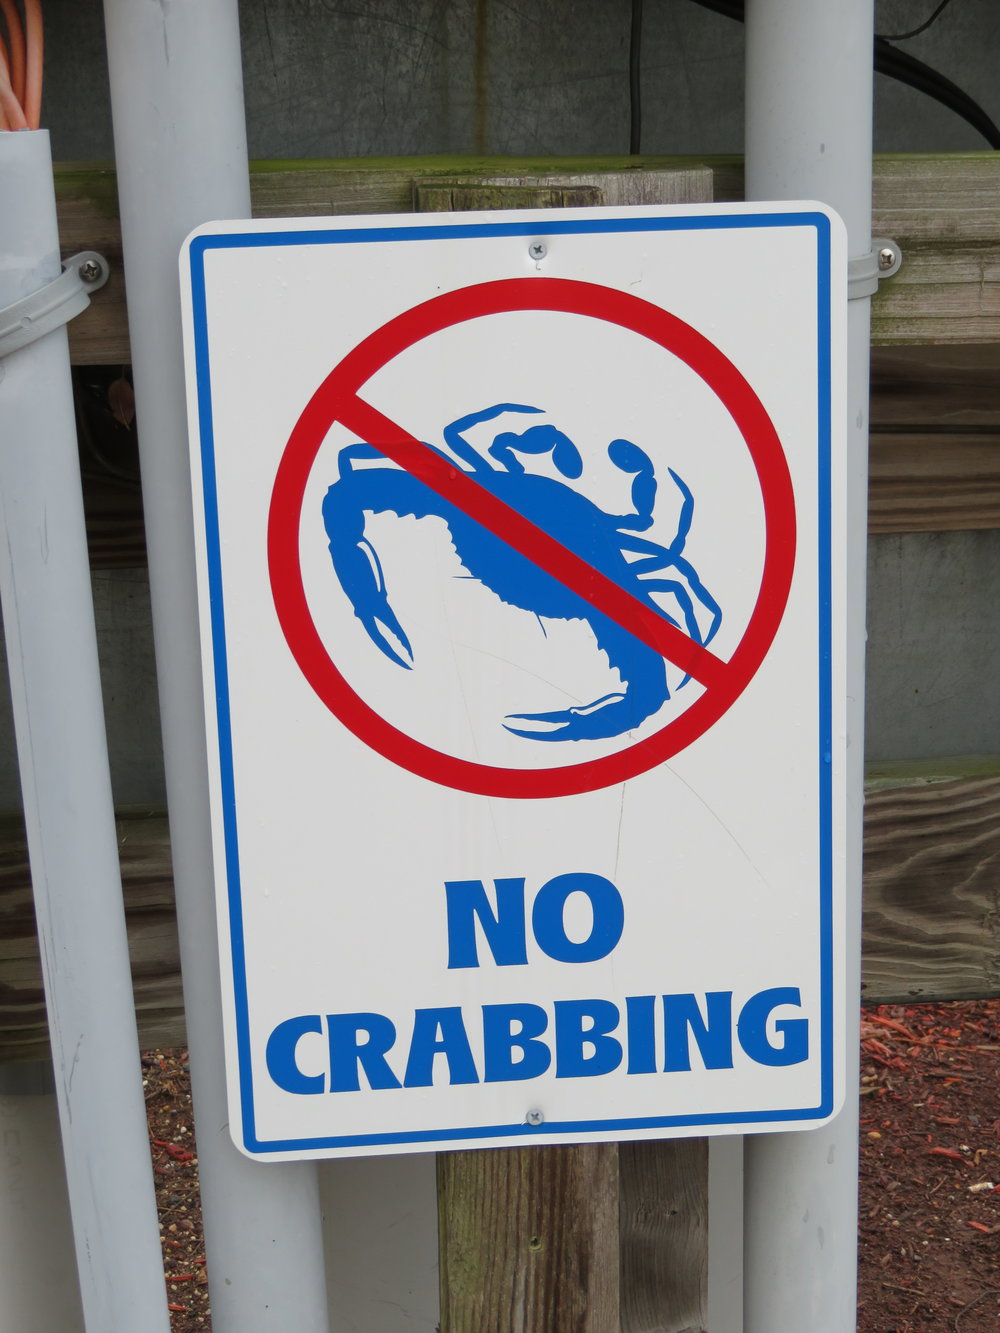 We decided both catching crabs (double entendre intended) and being a crab should be prohibited.